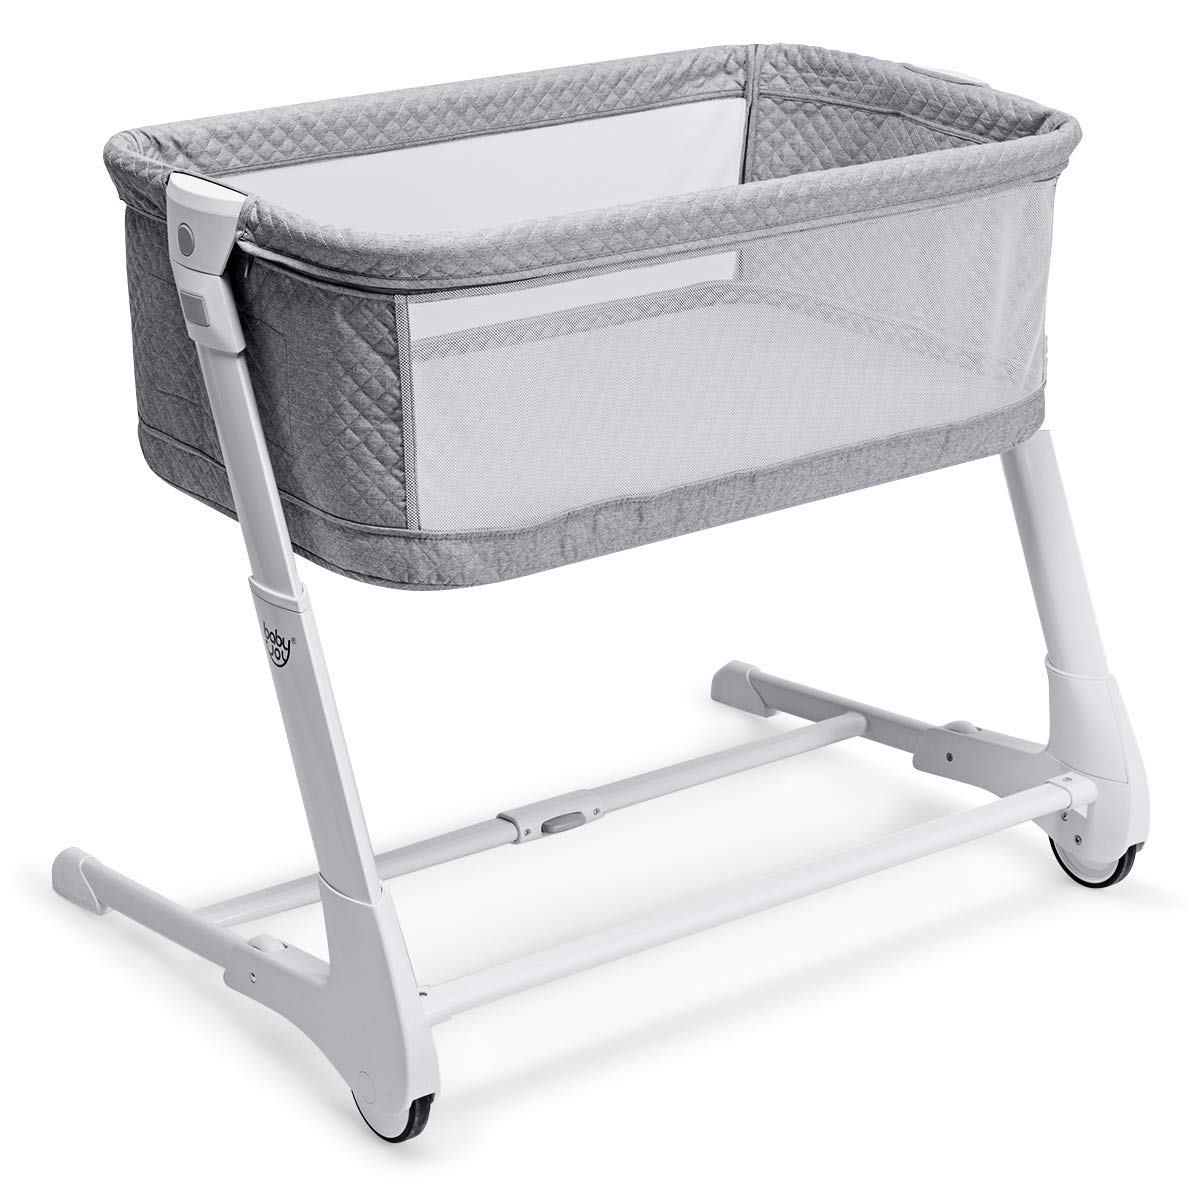 Straps BABY JOY Baby Bedside Crib Cradle for Newborn Infants White 2-in-1 Height Adjustable Sleeper Bassinet with Detachable /& Washable Mattress